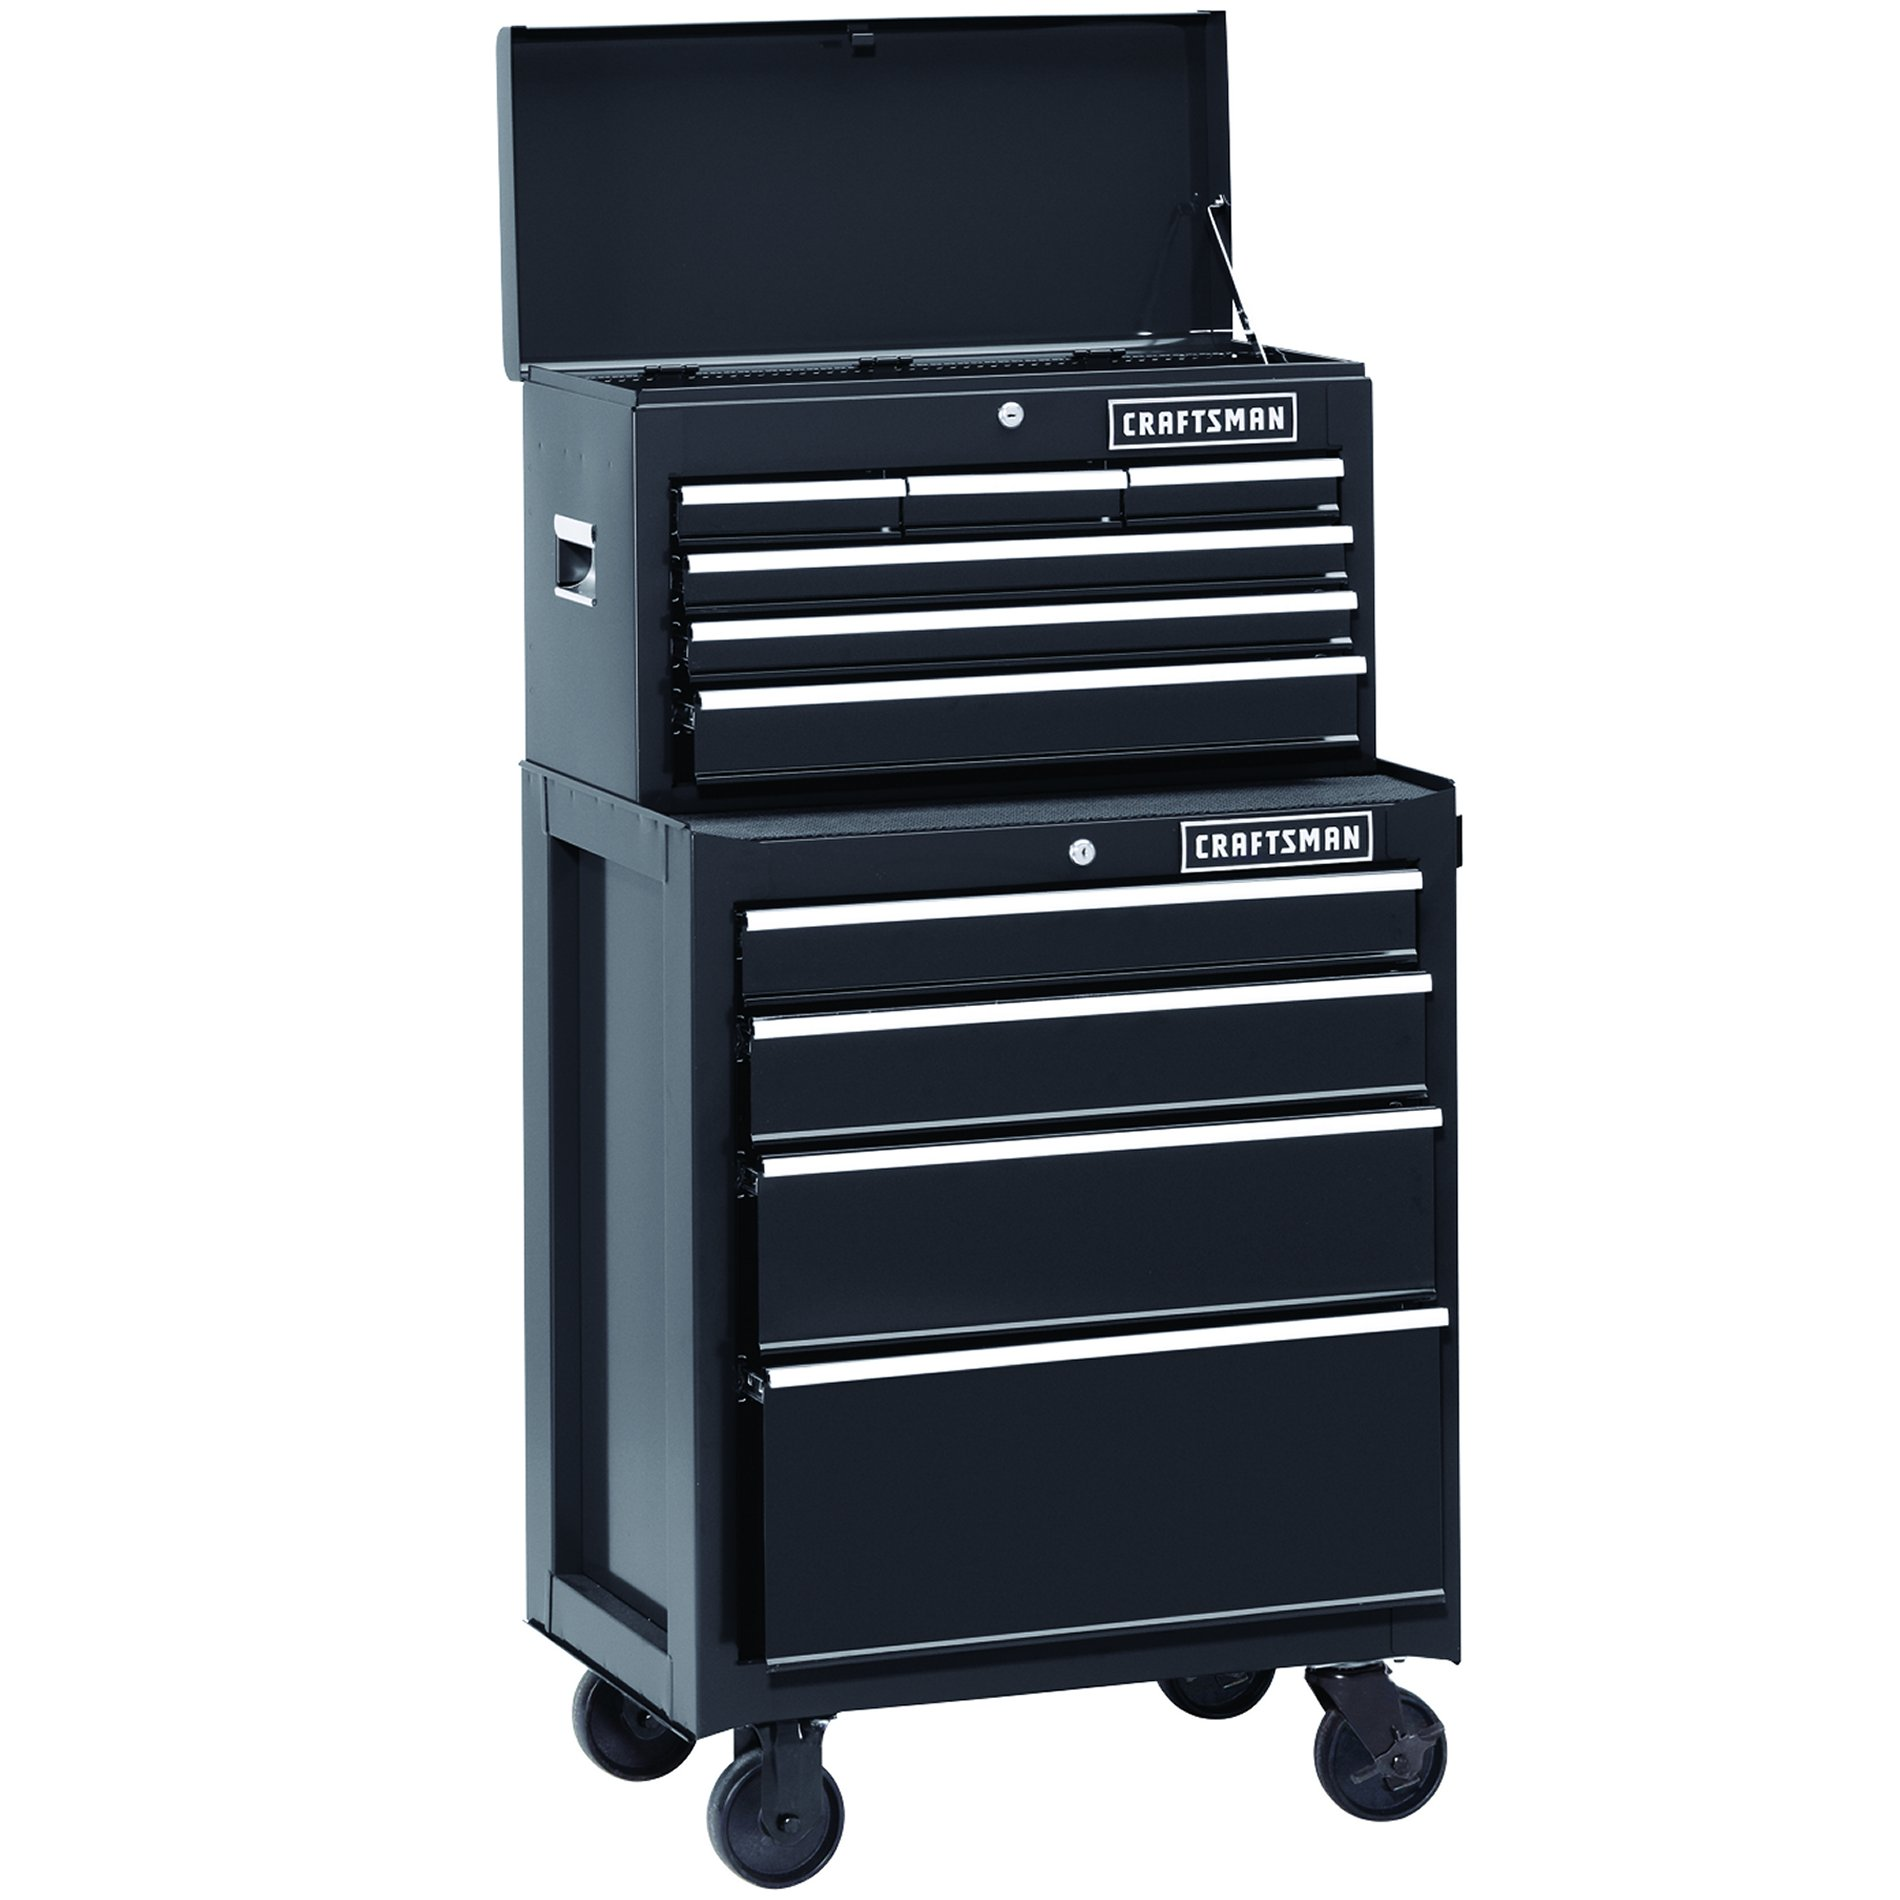 26 in. 10-Drawer Heavy-Duty Ball-Bearing 2-Piece Combo - Black